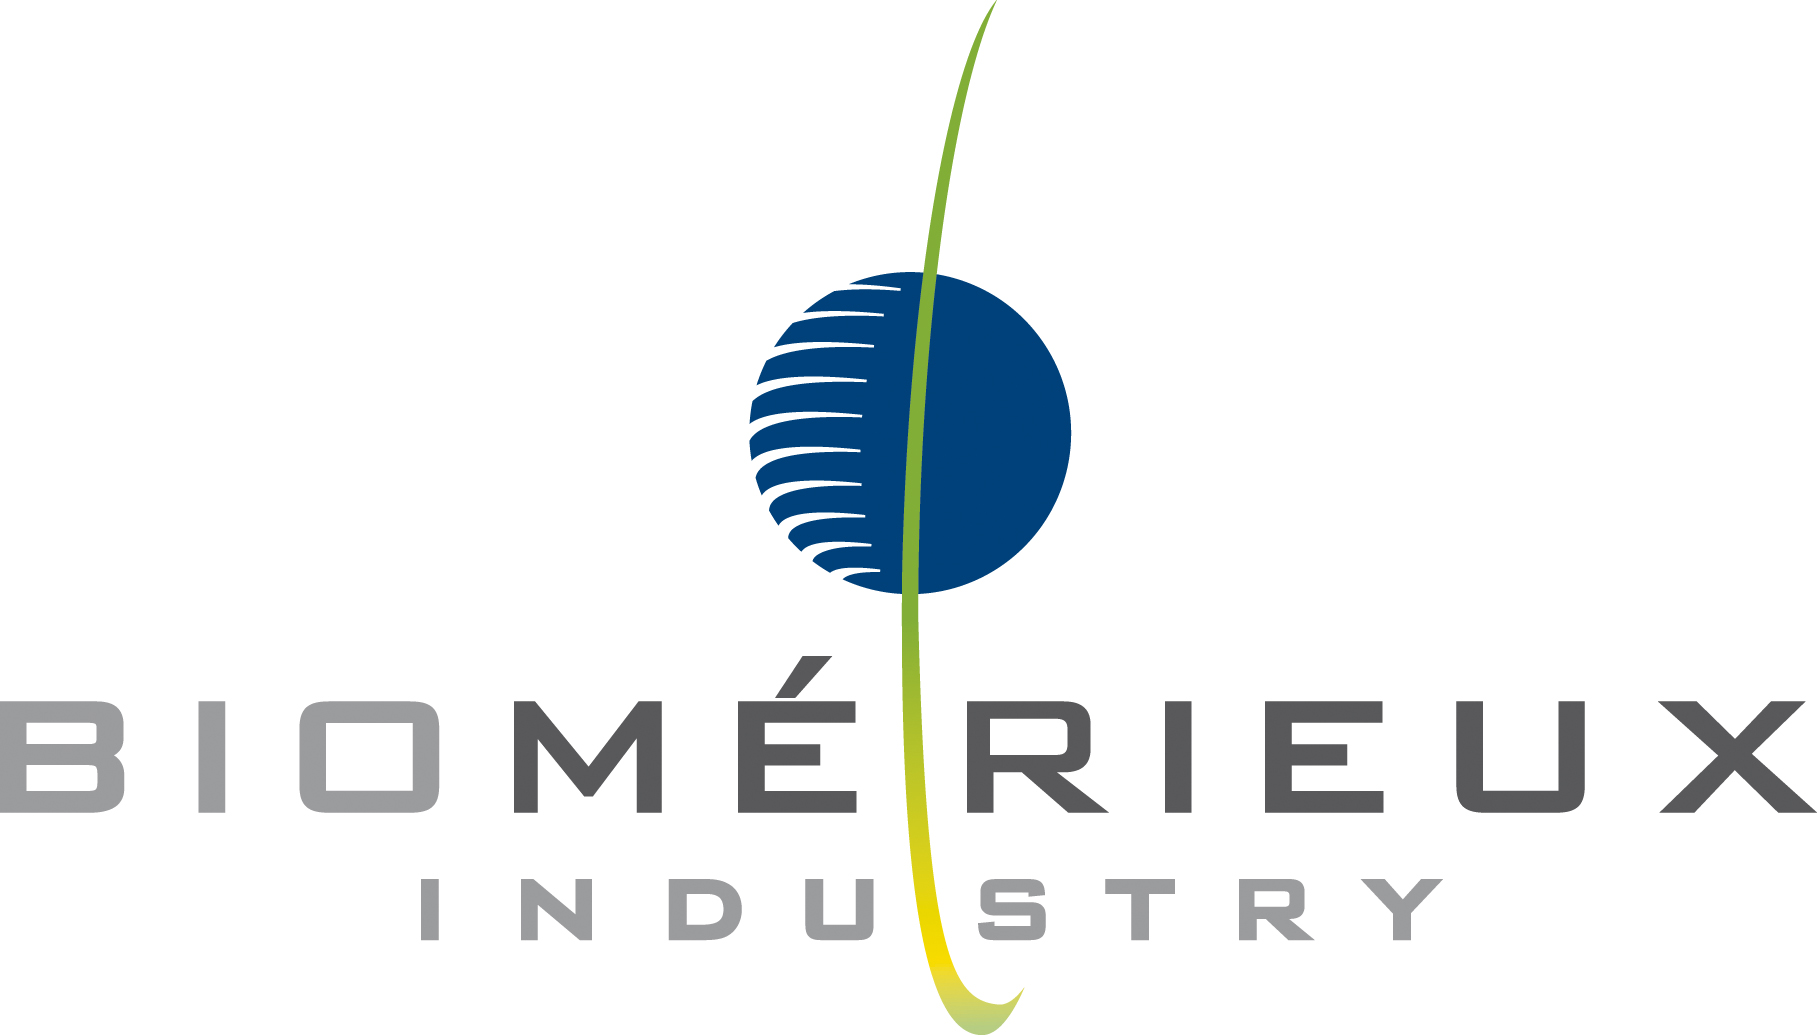 biomerieux logo small